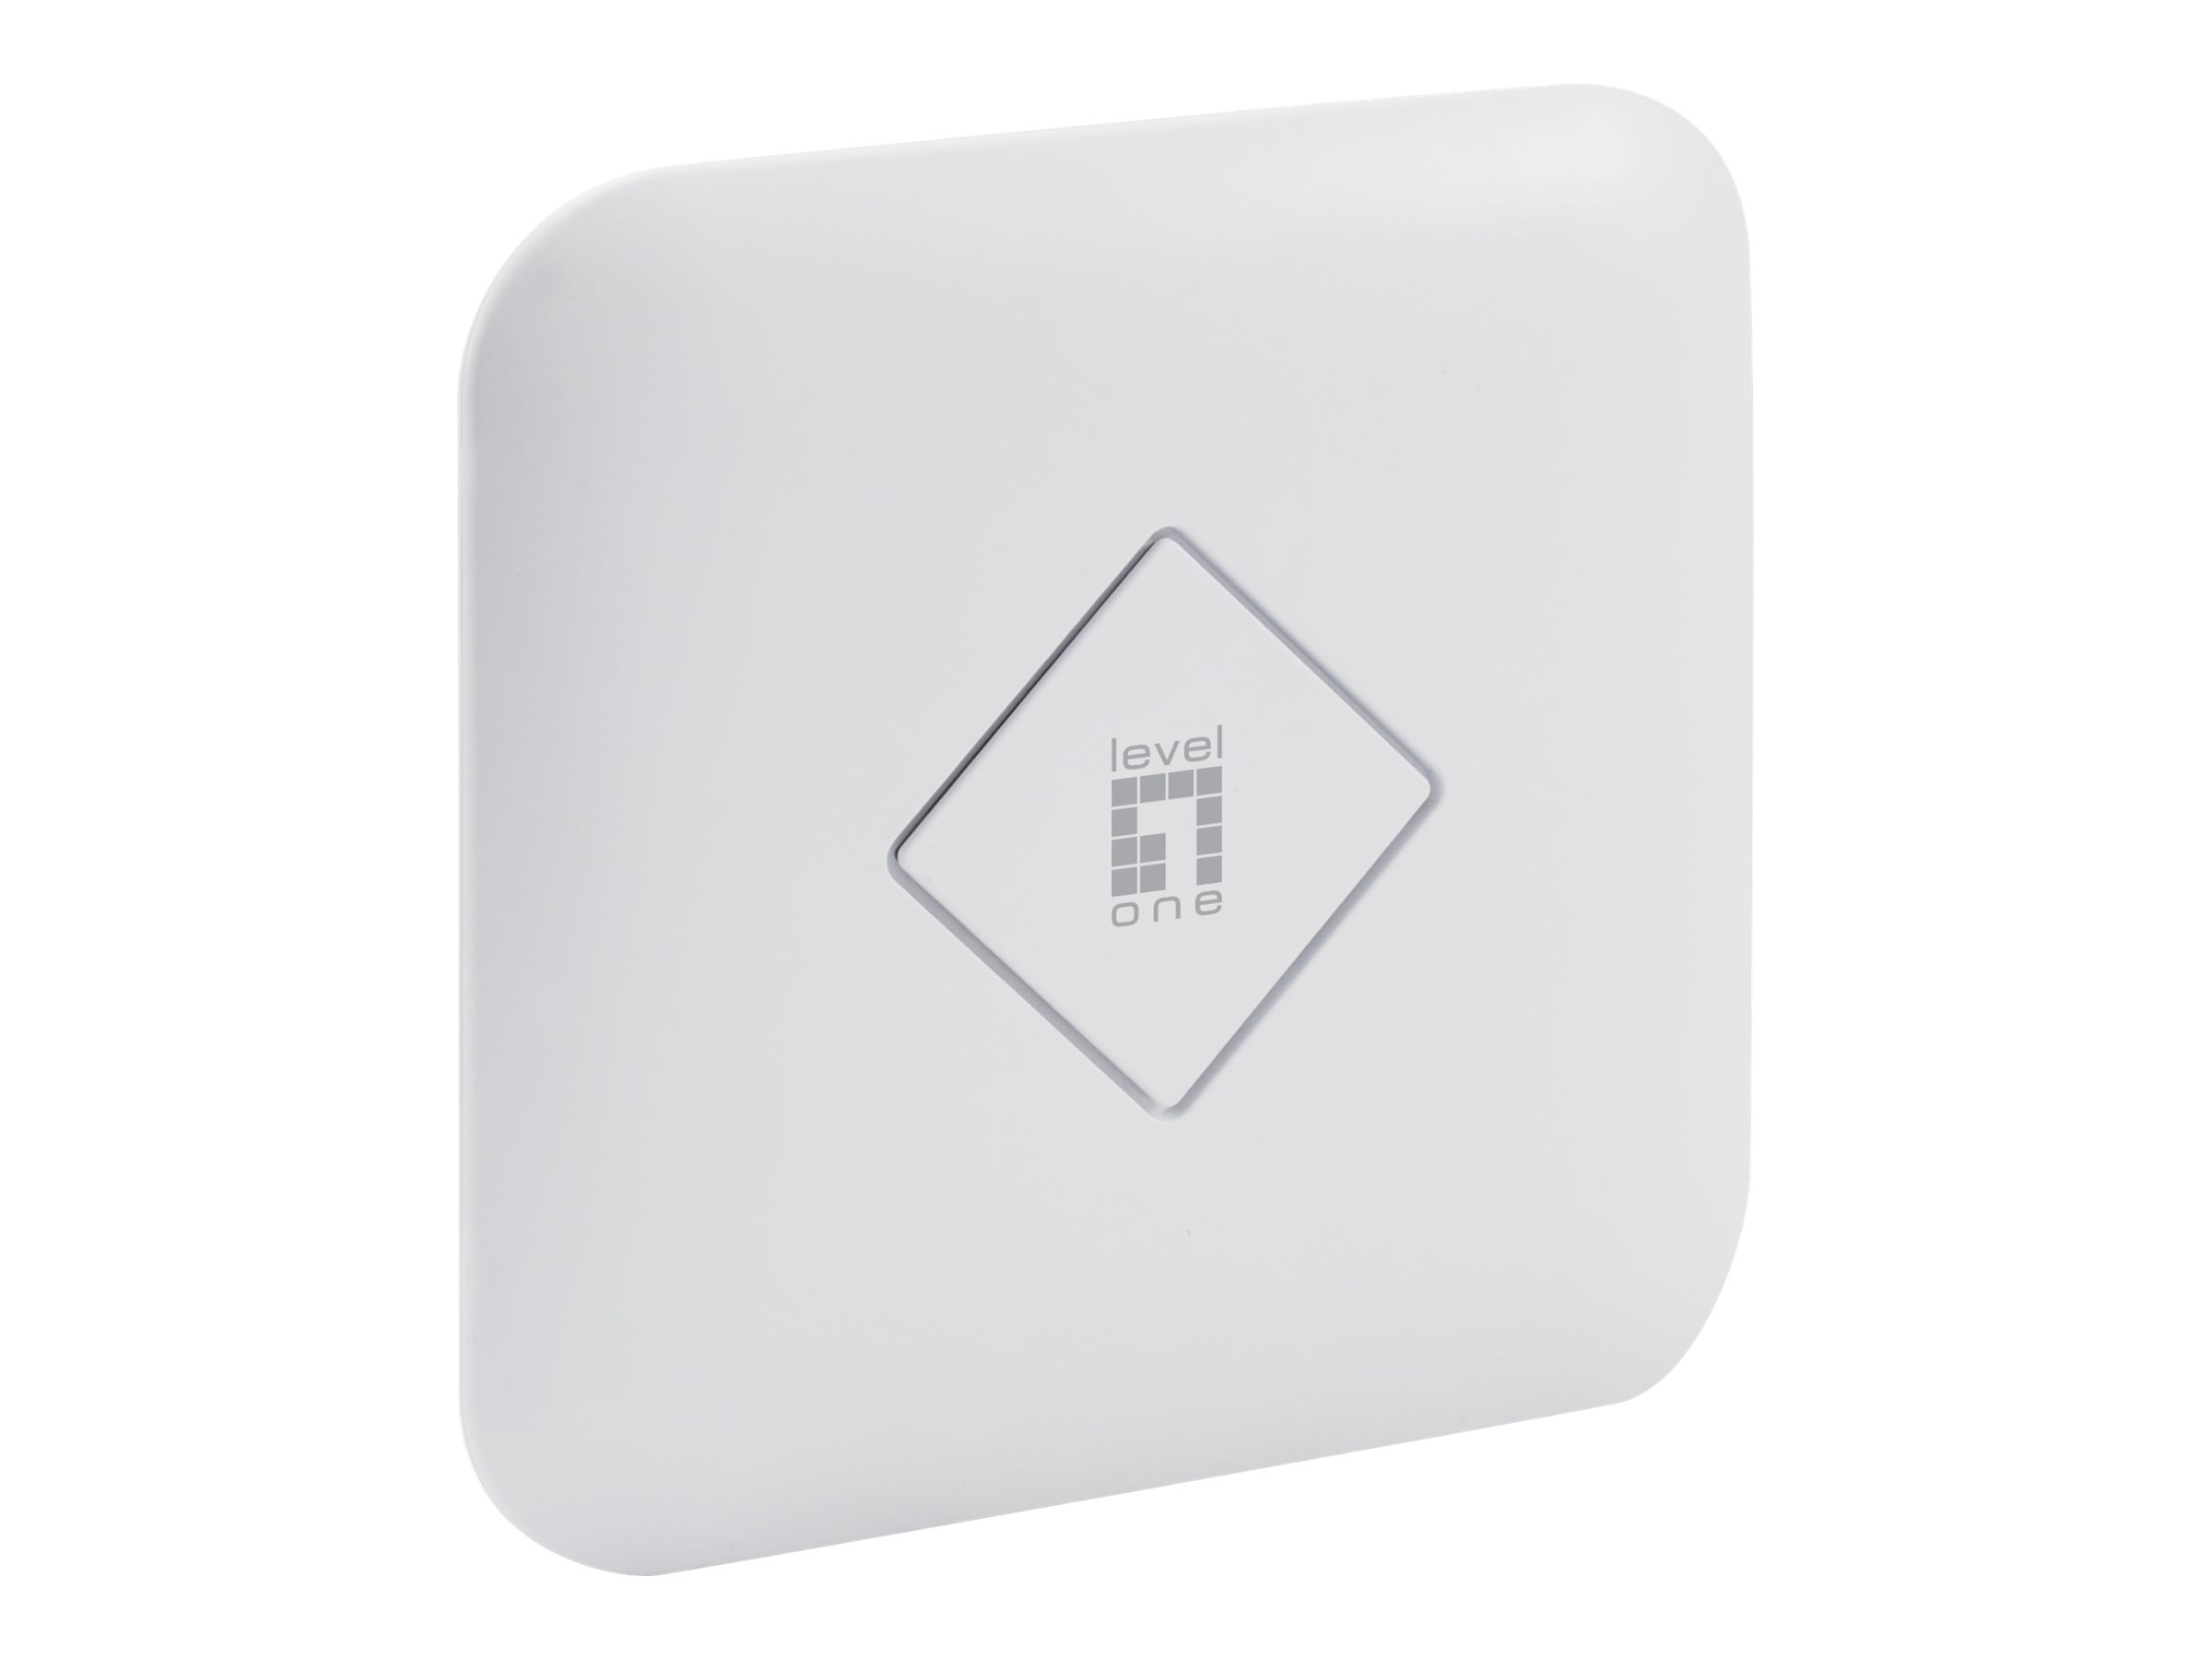 LevelOne WAP-8122 - wireless access point